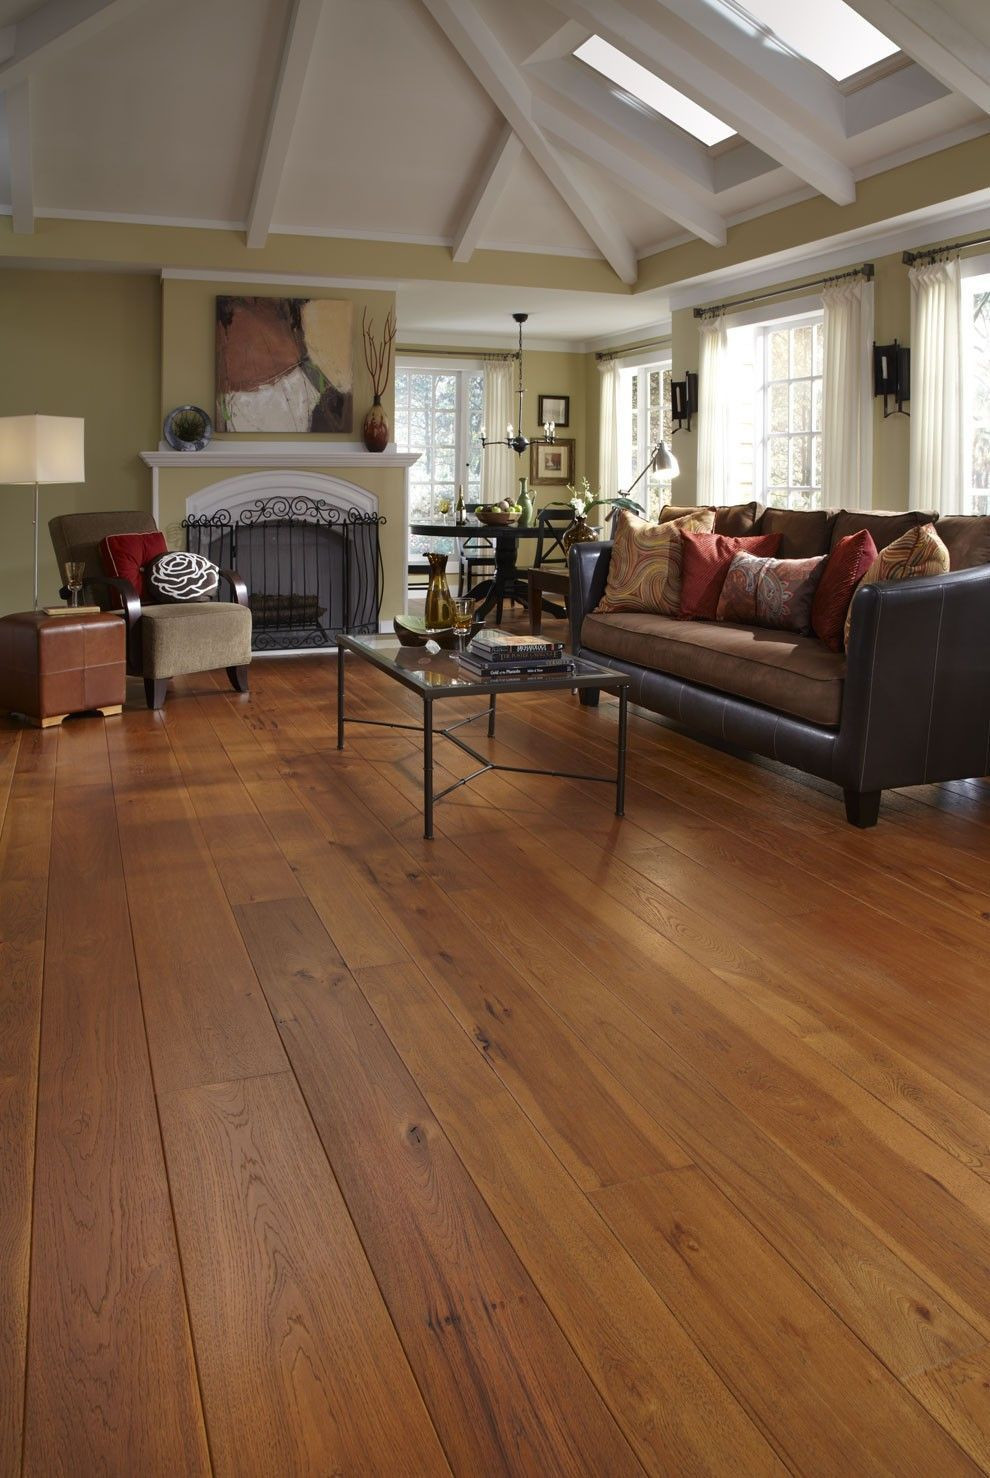 hardwood floor refinishing denver co of brushed hickory living room flooring pinterest wide plank within carlisle wide plank floors is the premier supplier of hand crafted wood flooring including hickory hardwood floors and prefinished wood flooring in a